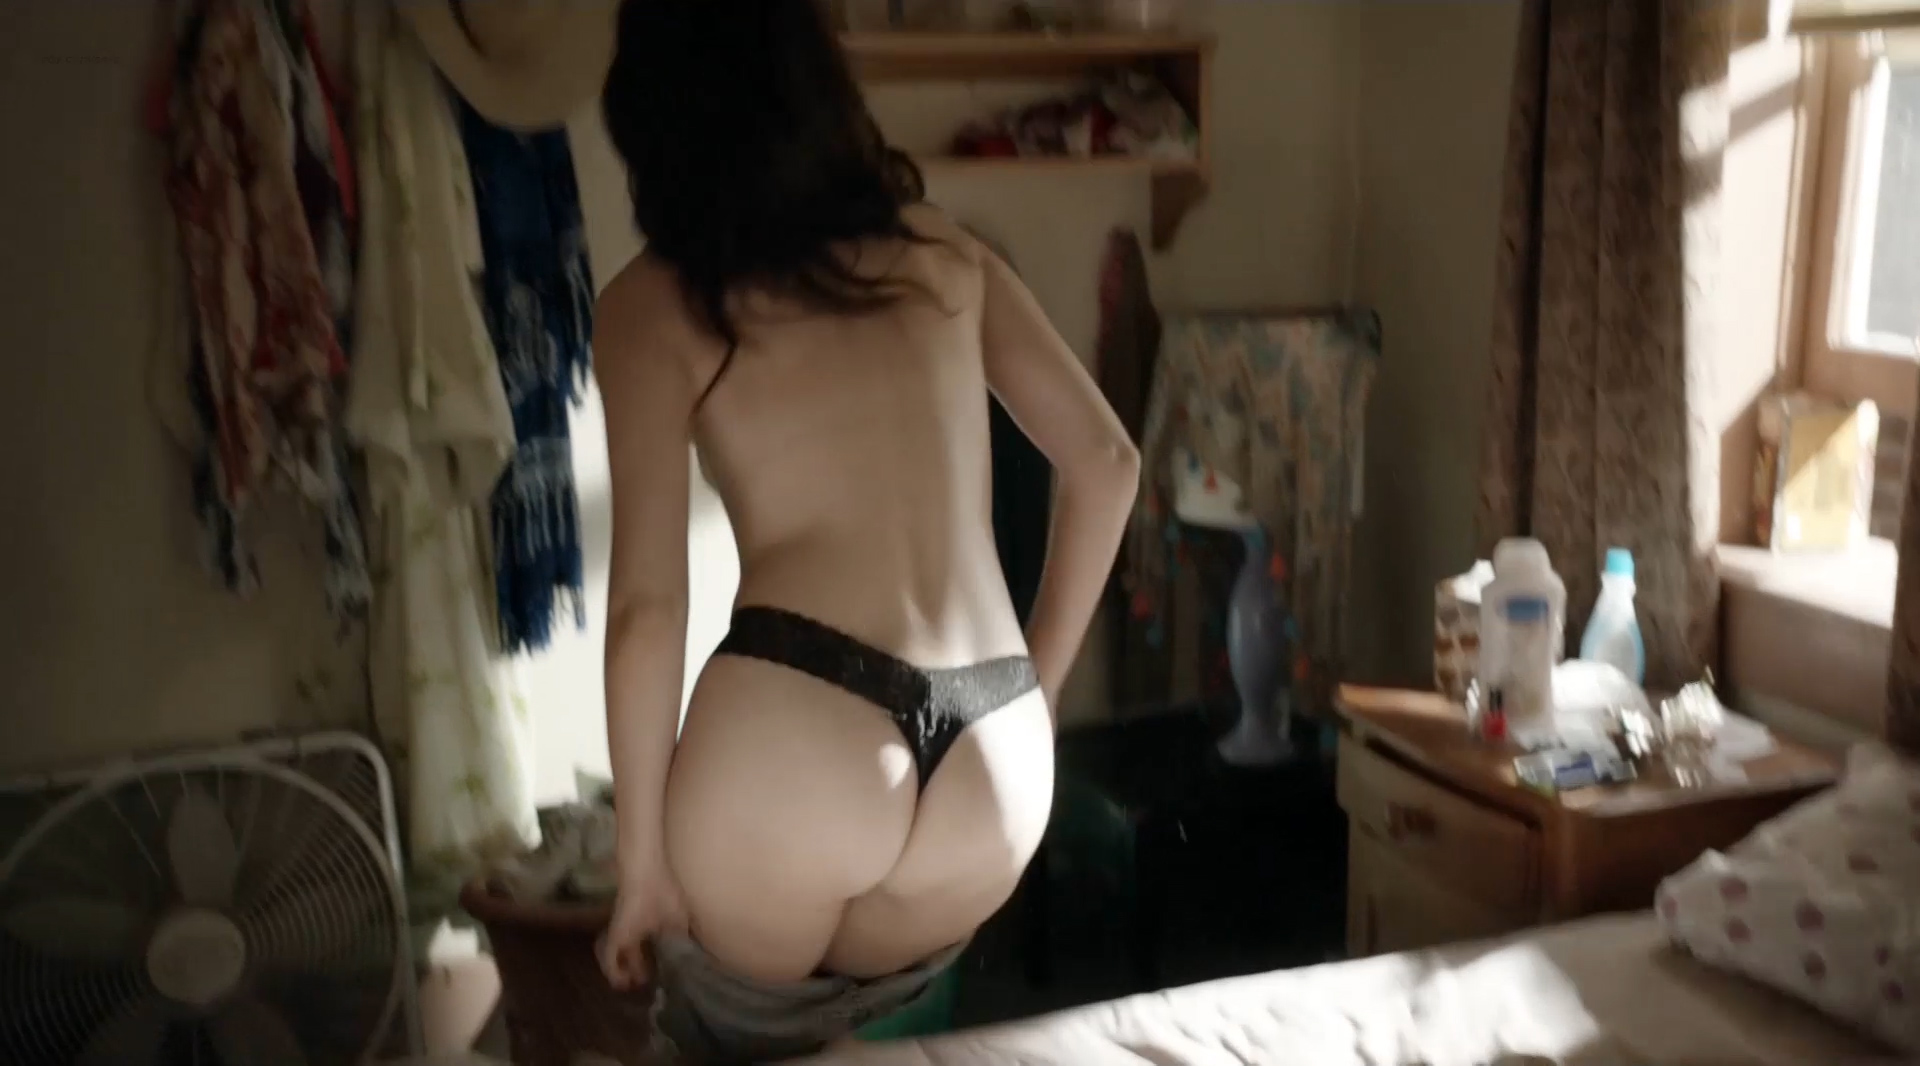 image Emmy rossum juicy sex scene in shameless scandalplanetcom